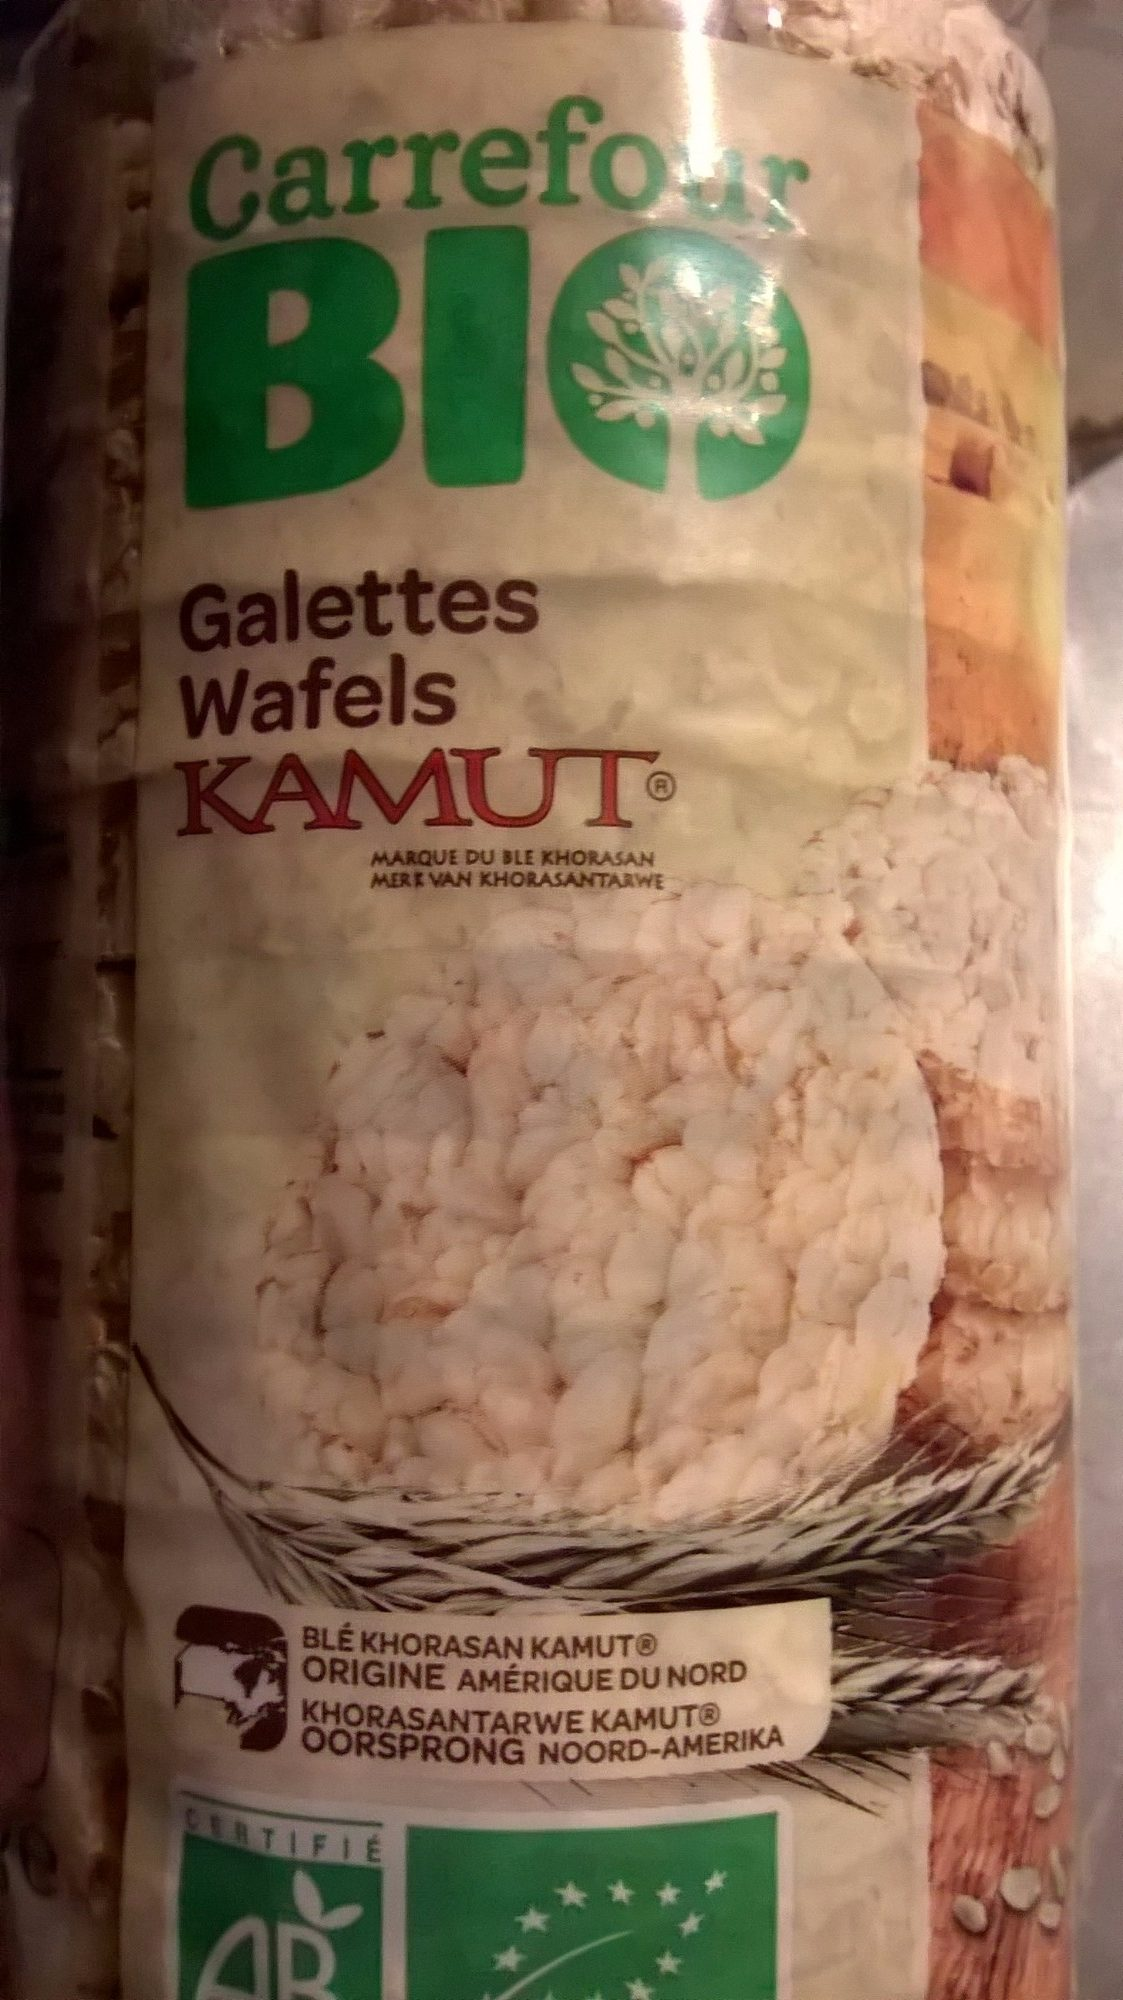 Galettes - Kamut - Product